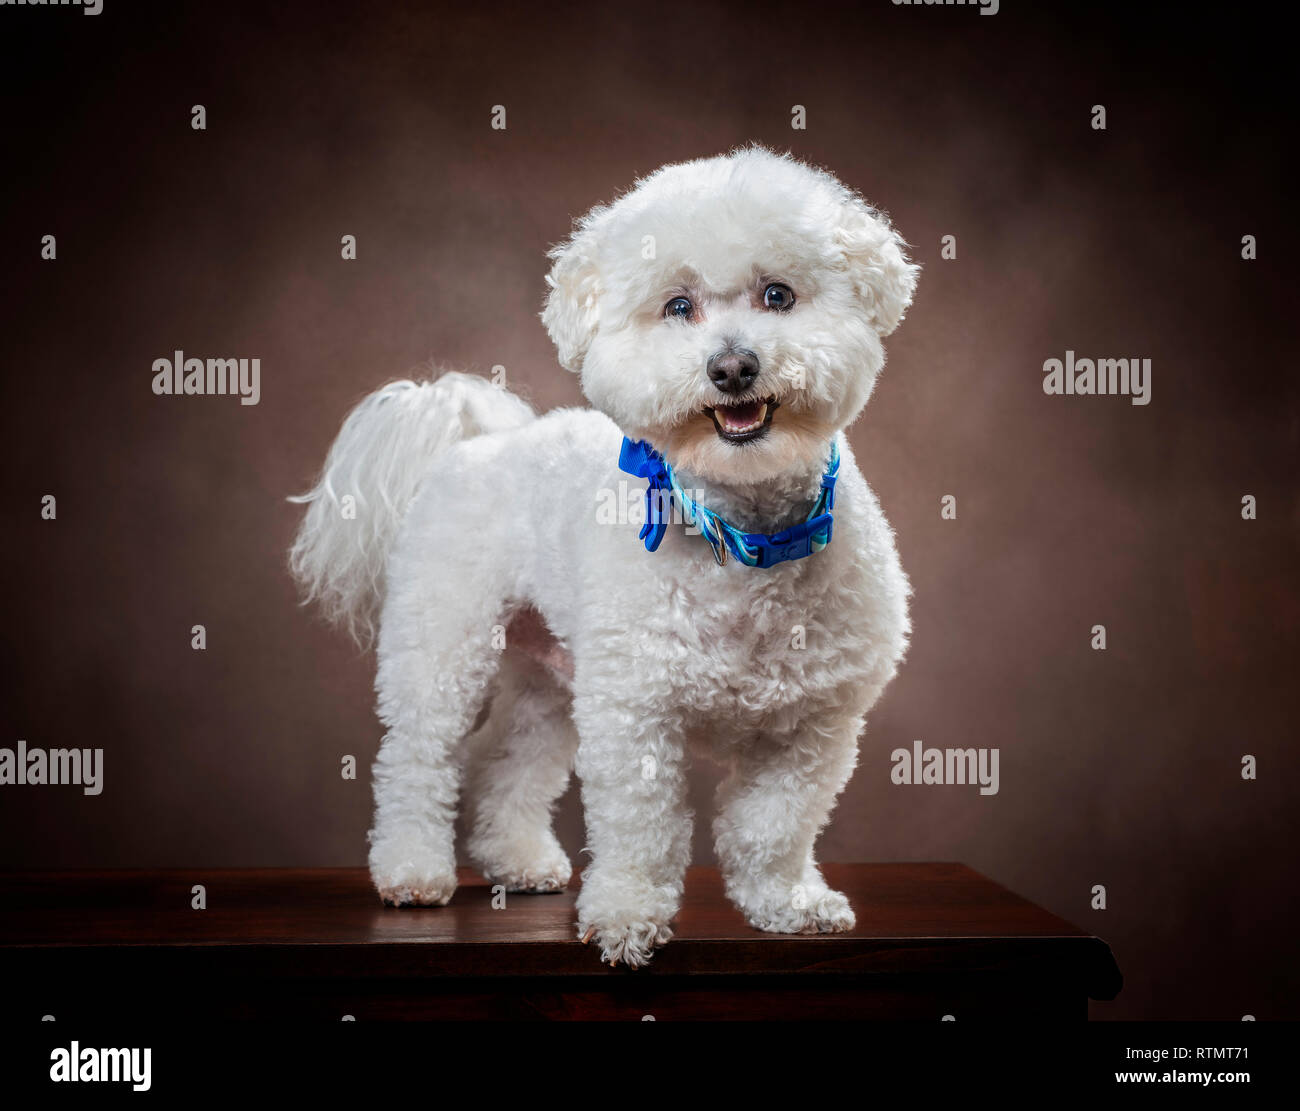 Horizontal shot of a white fluffy Bichon Frise dog with a